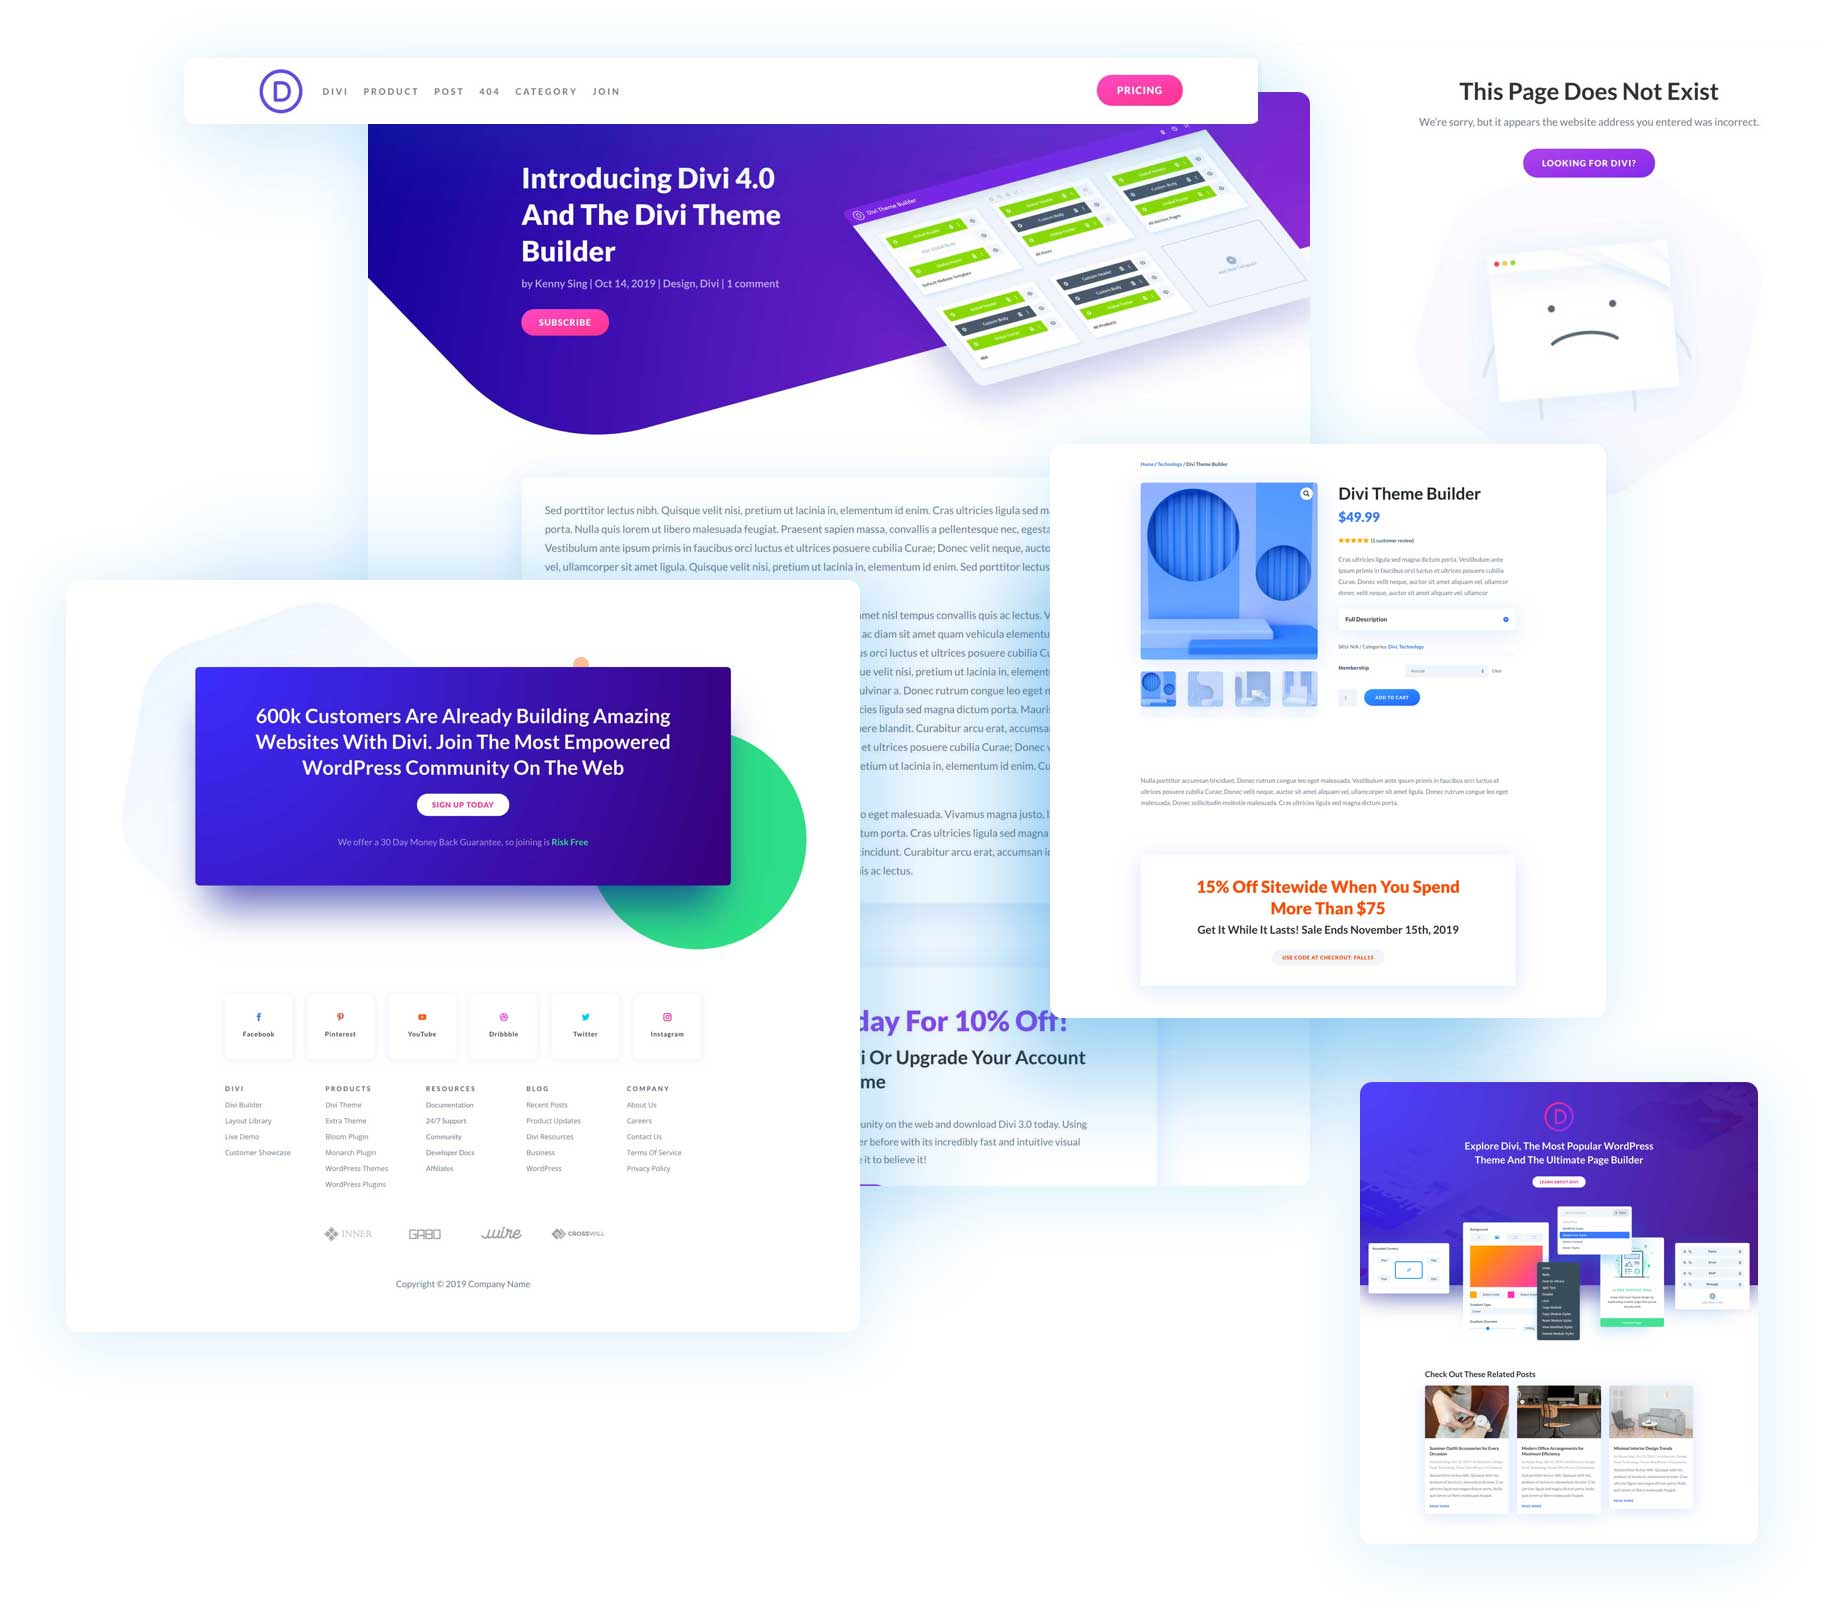 Introducing The Divi Theme Builder | Elegant Themes Blog